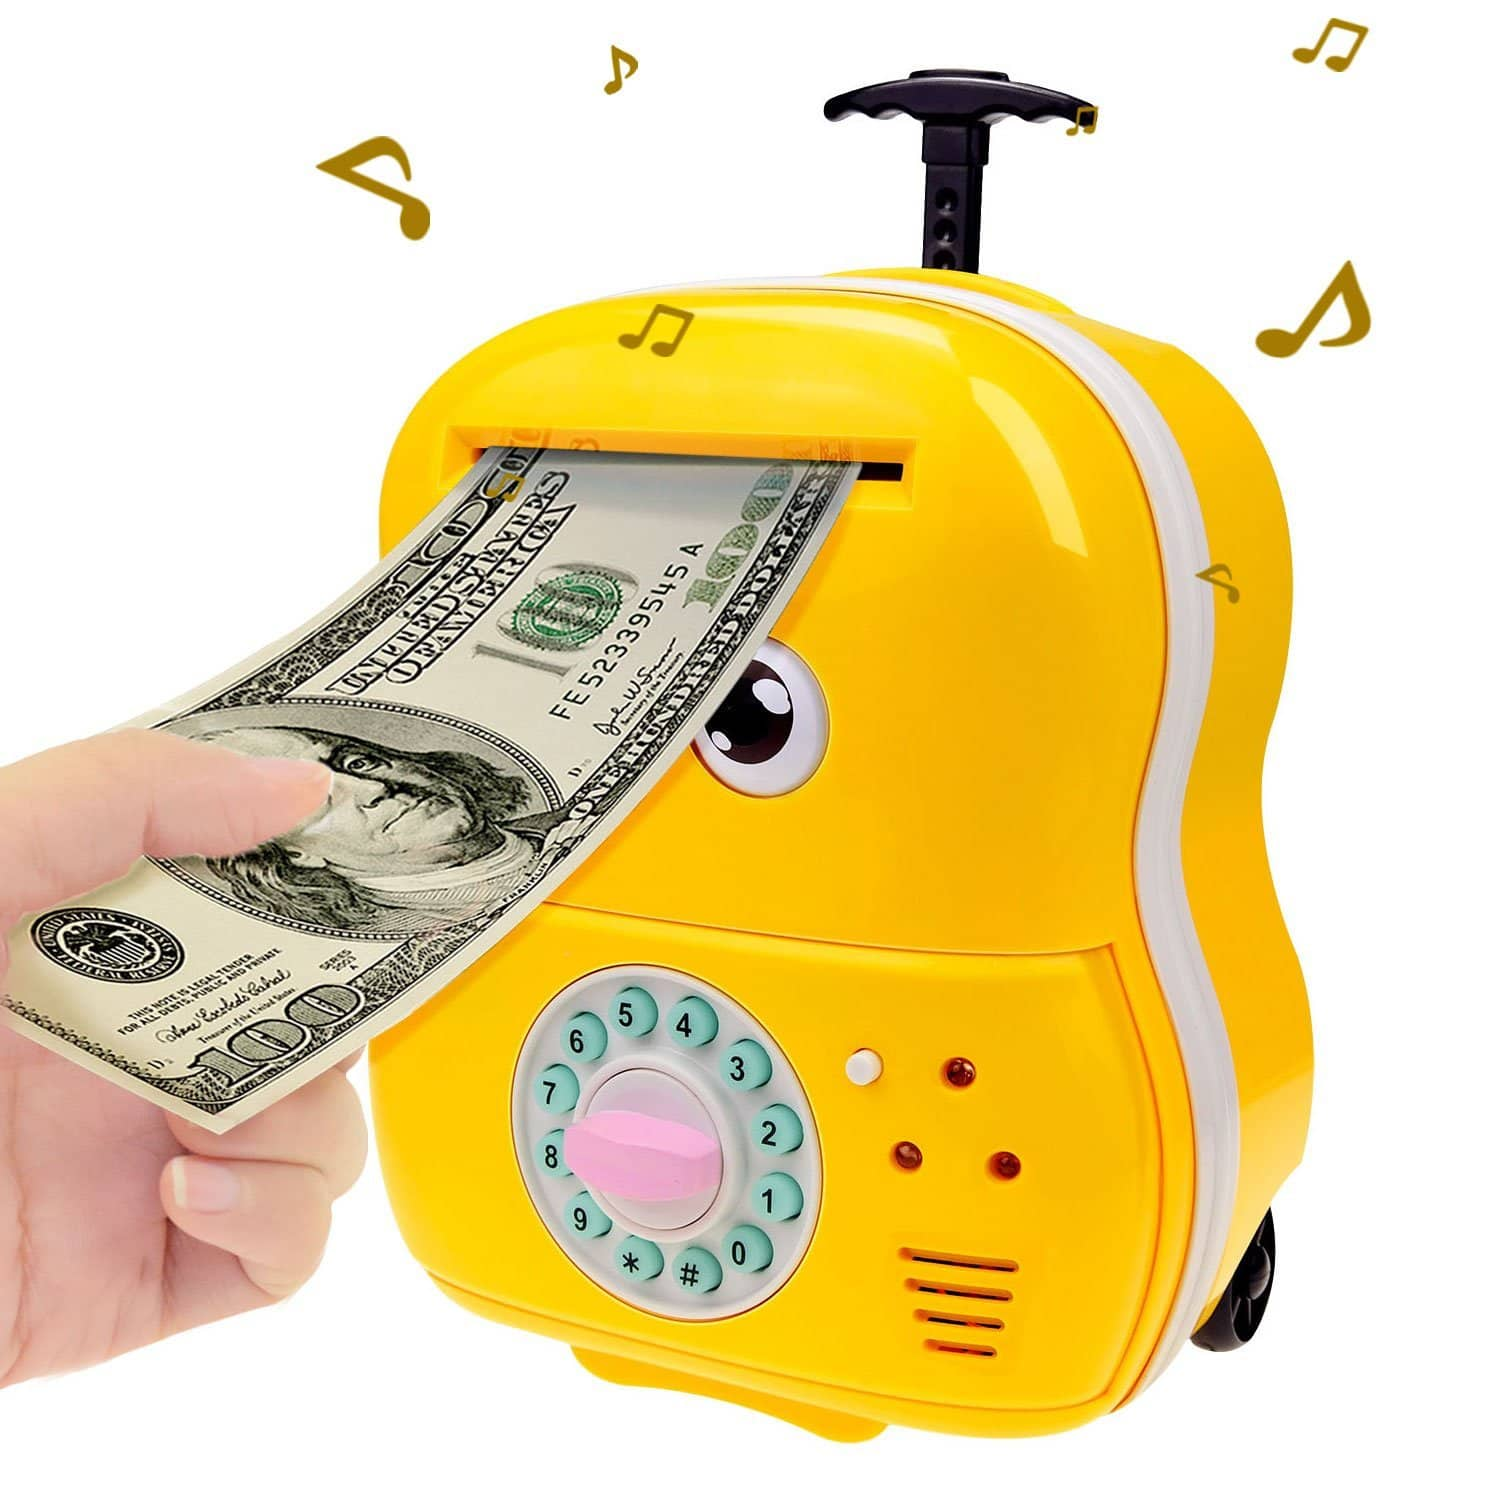 40% OFF - Cartoon Money Bank Electronic Password Piggy Bank Cash Coin Can Safe Saving Box ATM Bank with Music, Eyes Blink, Trolley Money Box Gift for Kids (Yellow) -$ 13.79 $13.79